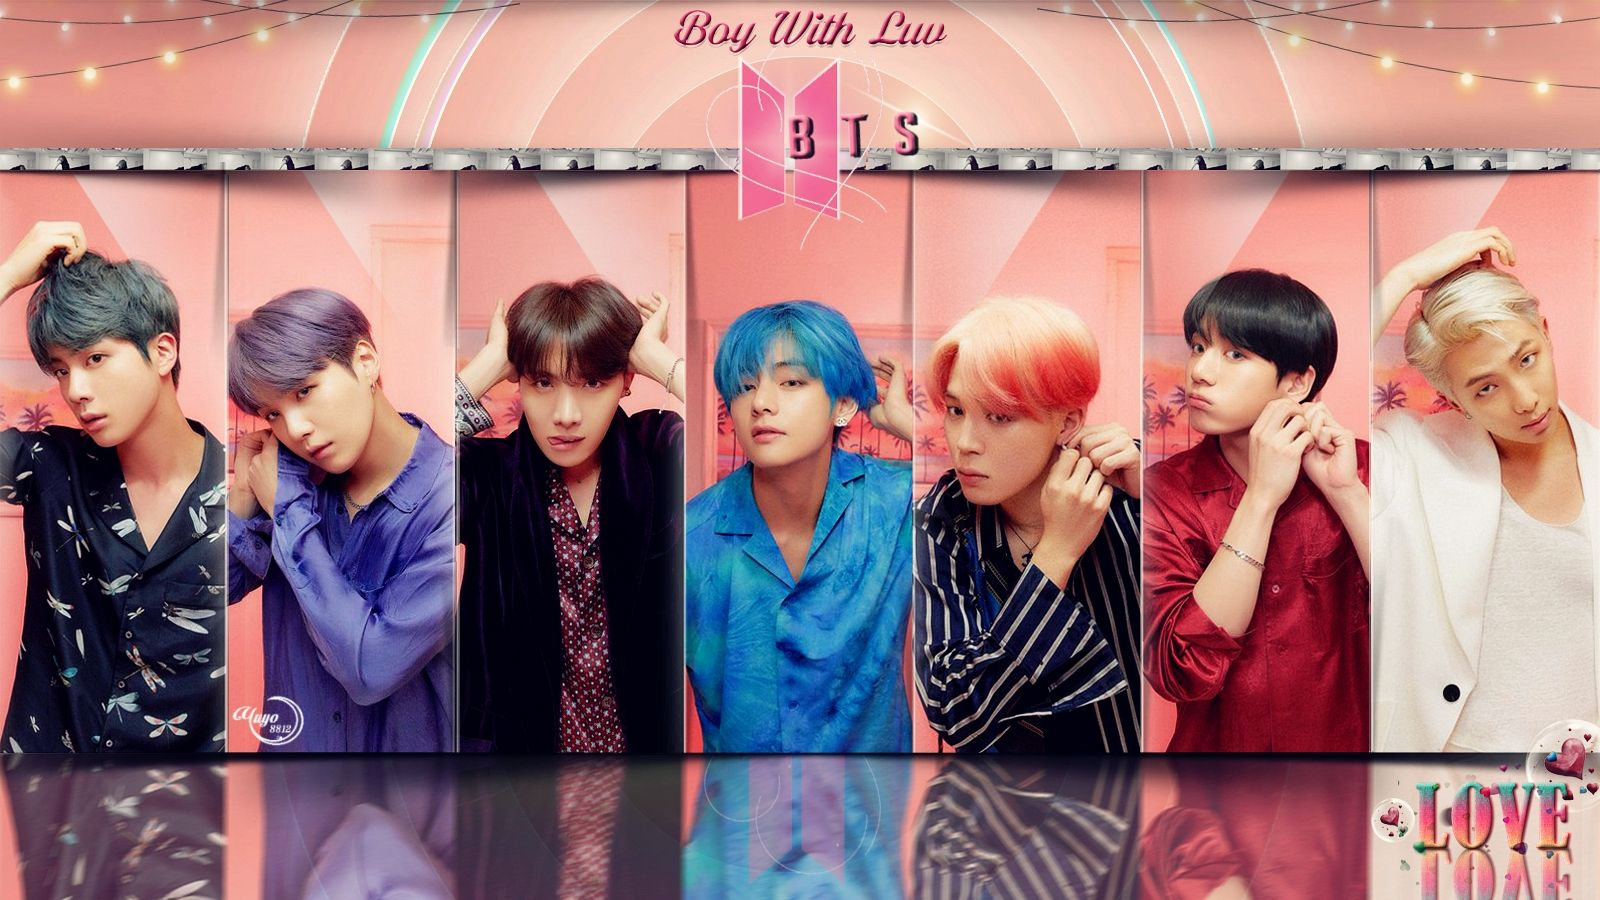 Boy With Luv Wallpapers Top Free Boy With Luv Backgrounds